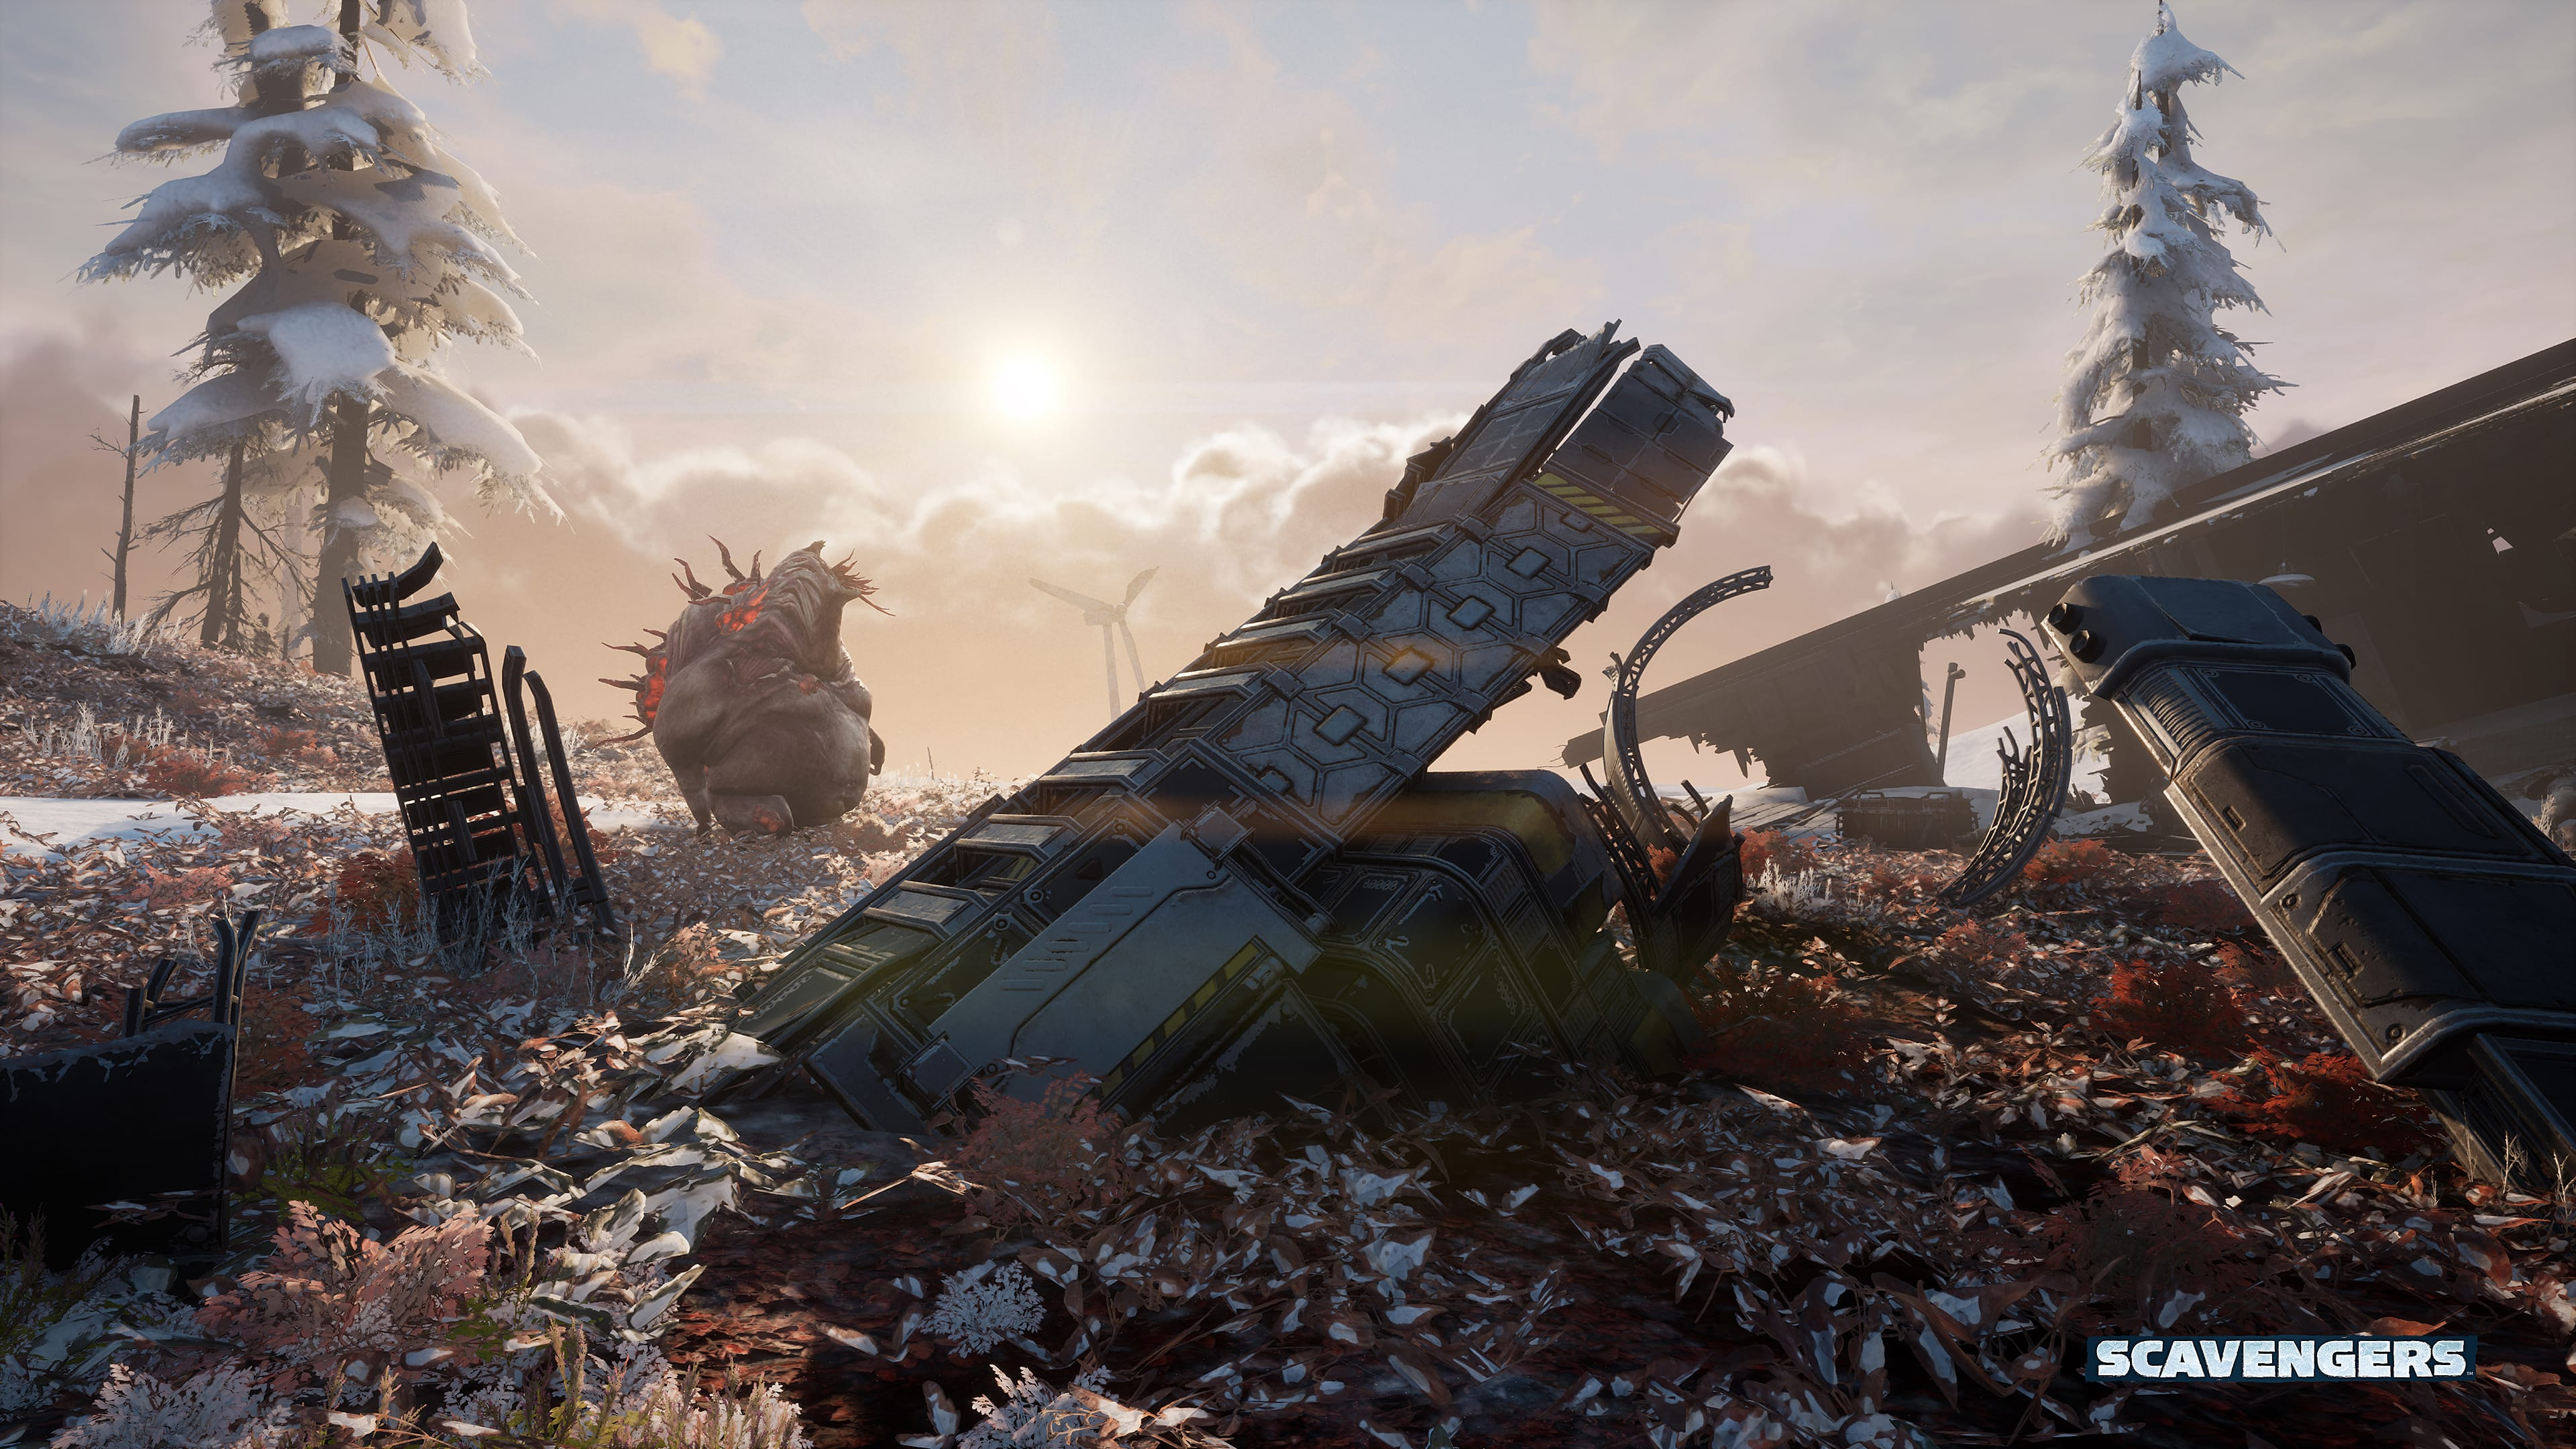 Scavengers: early access dated for the game mixing shooter and survival